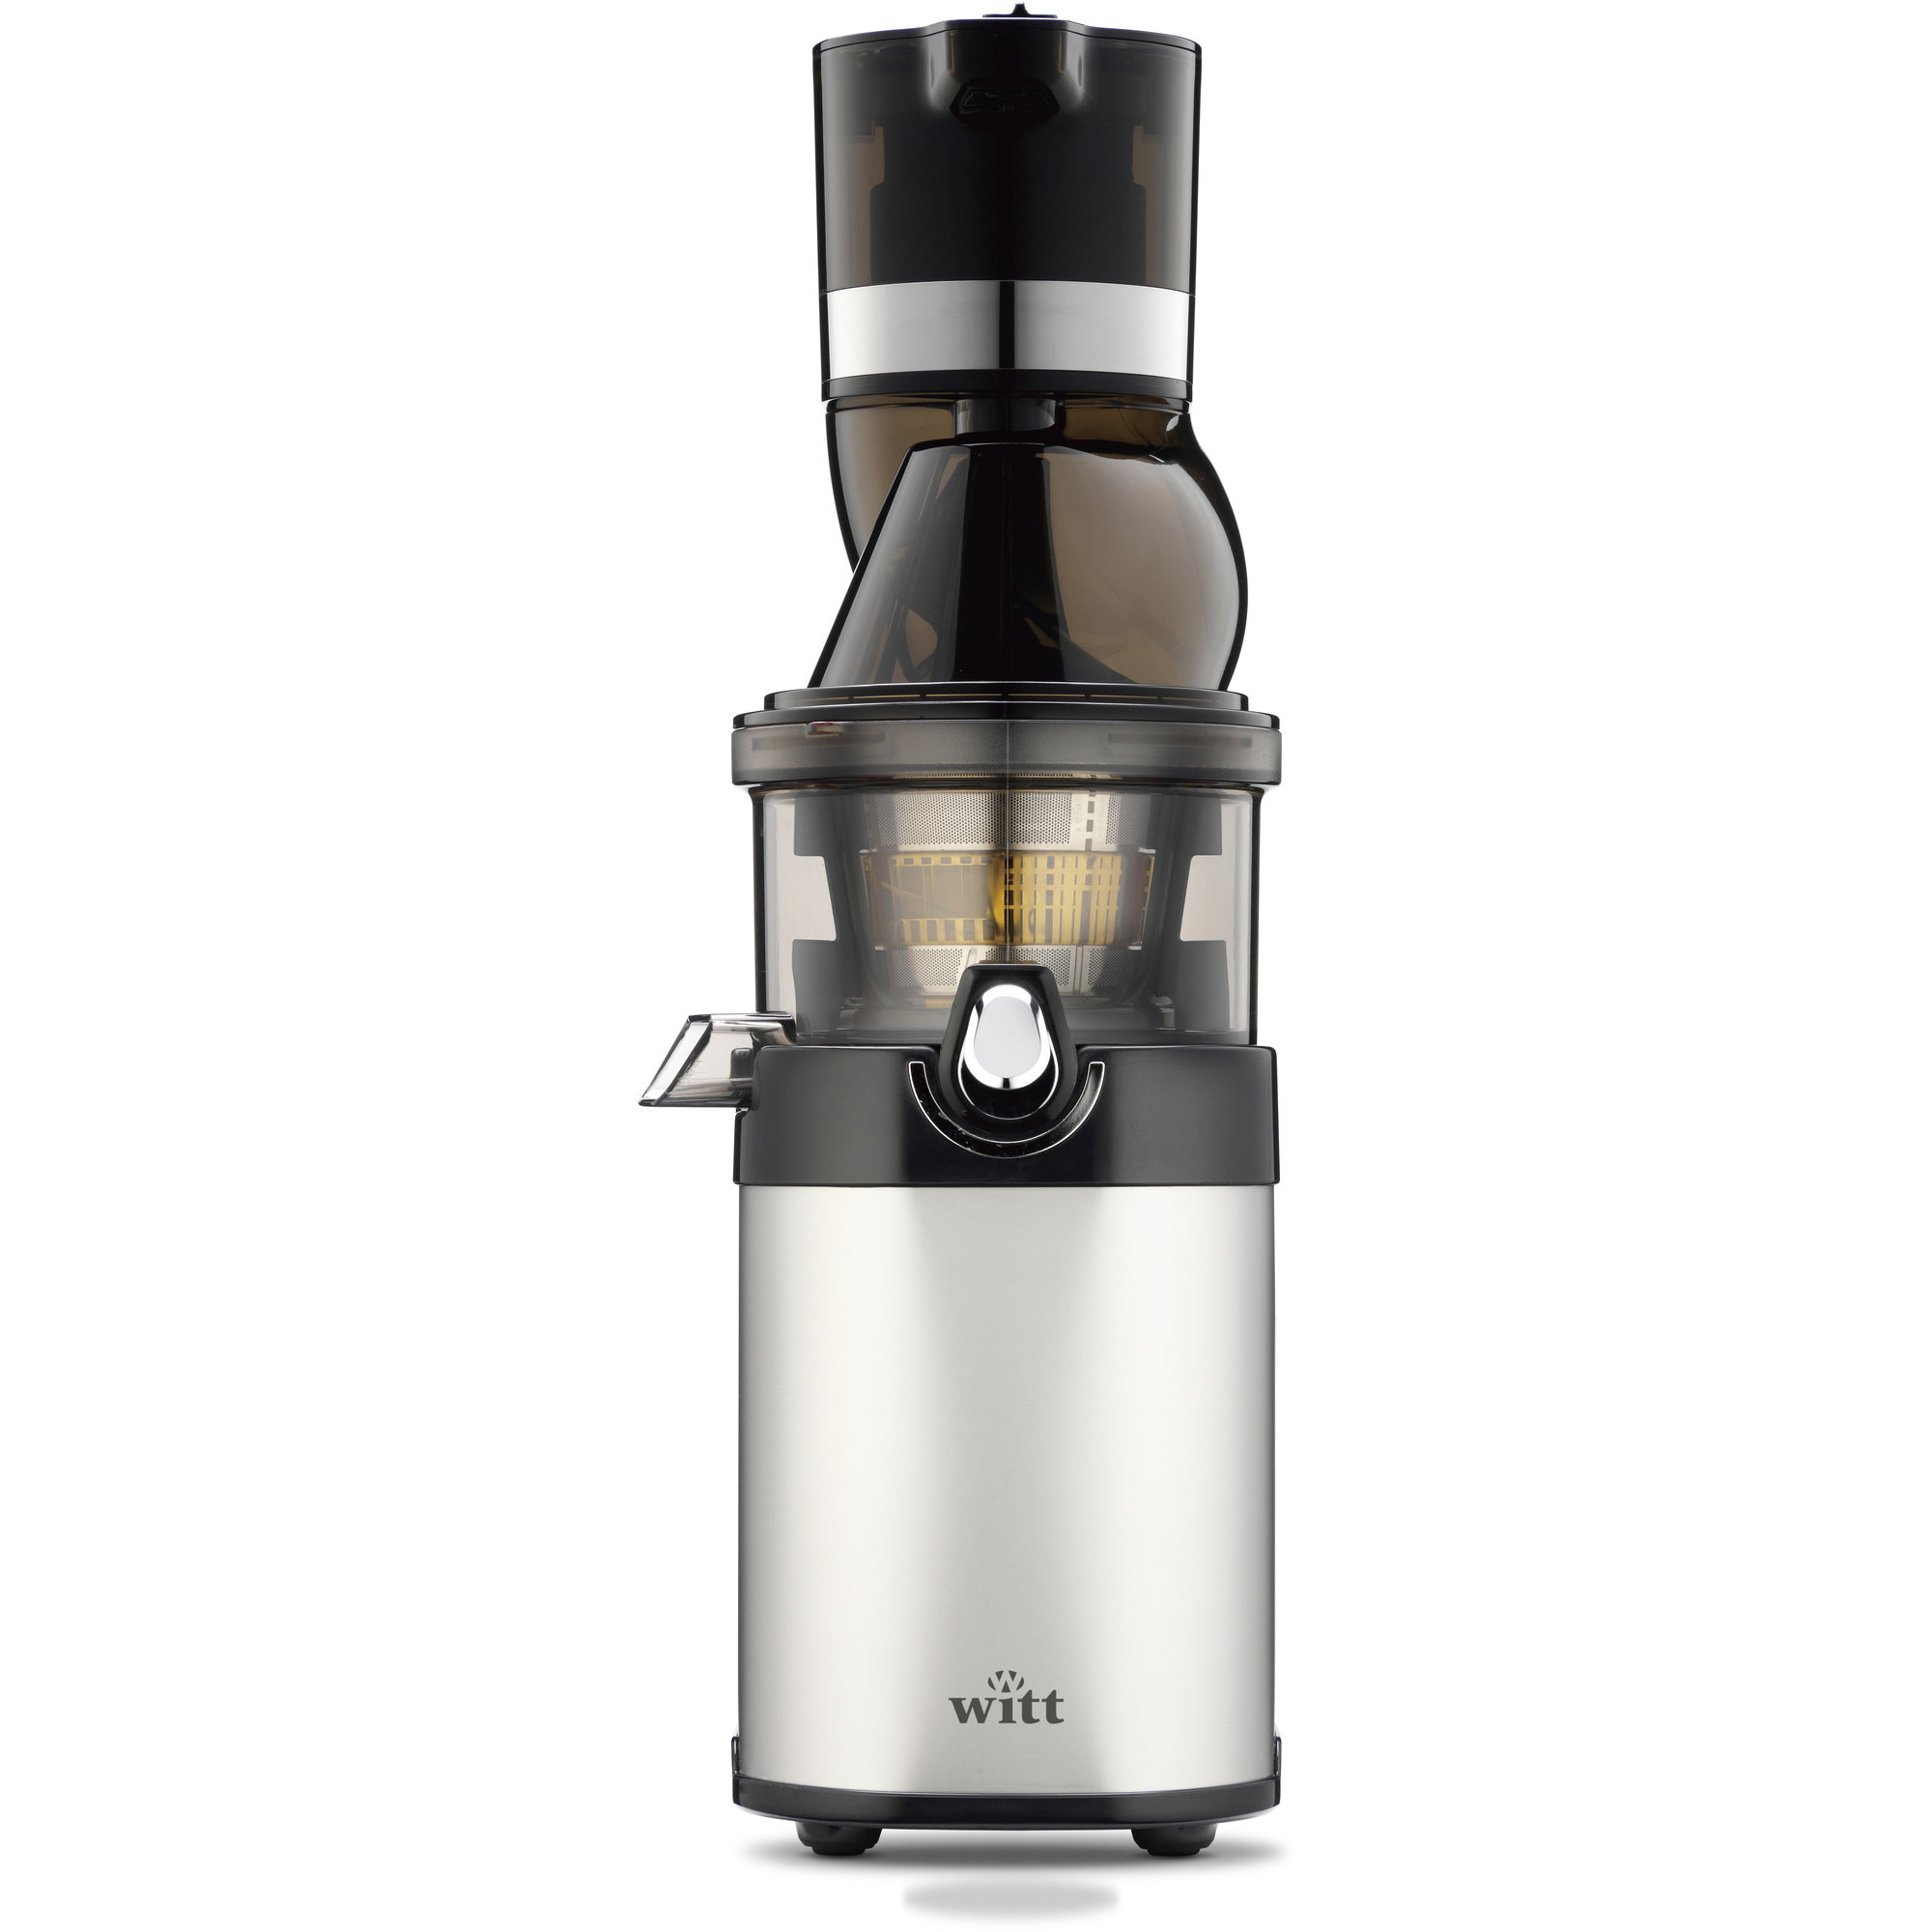 Witt by Kuvings CS 610 Pro Slowjuicer